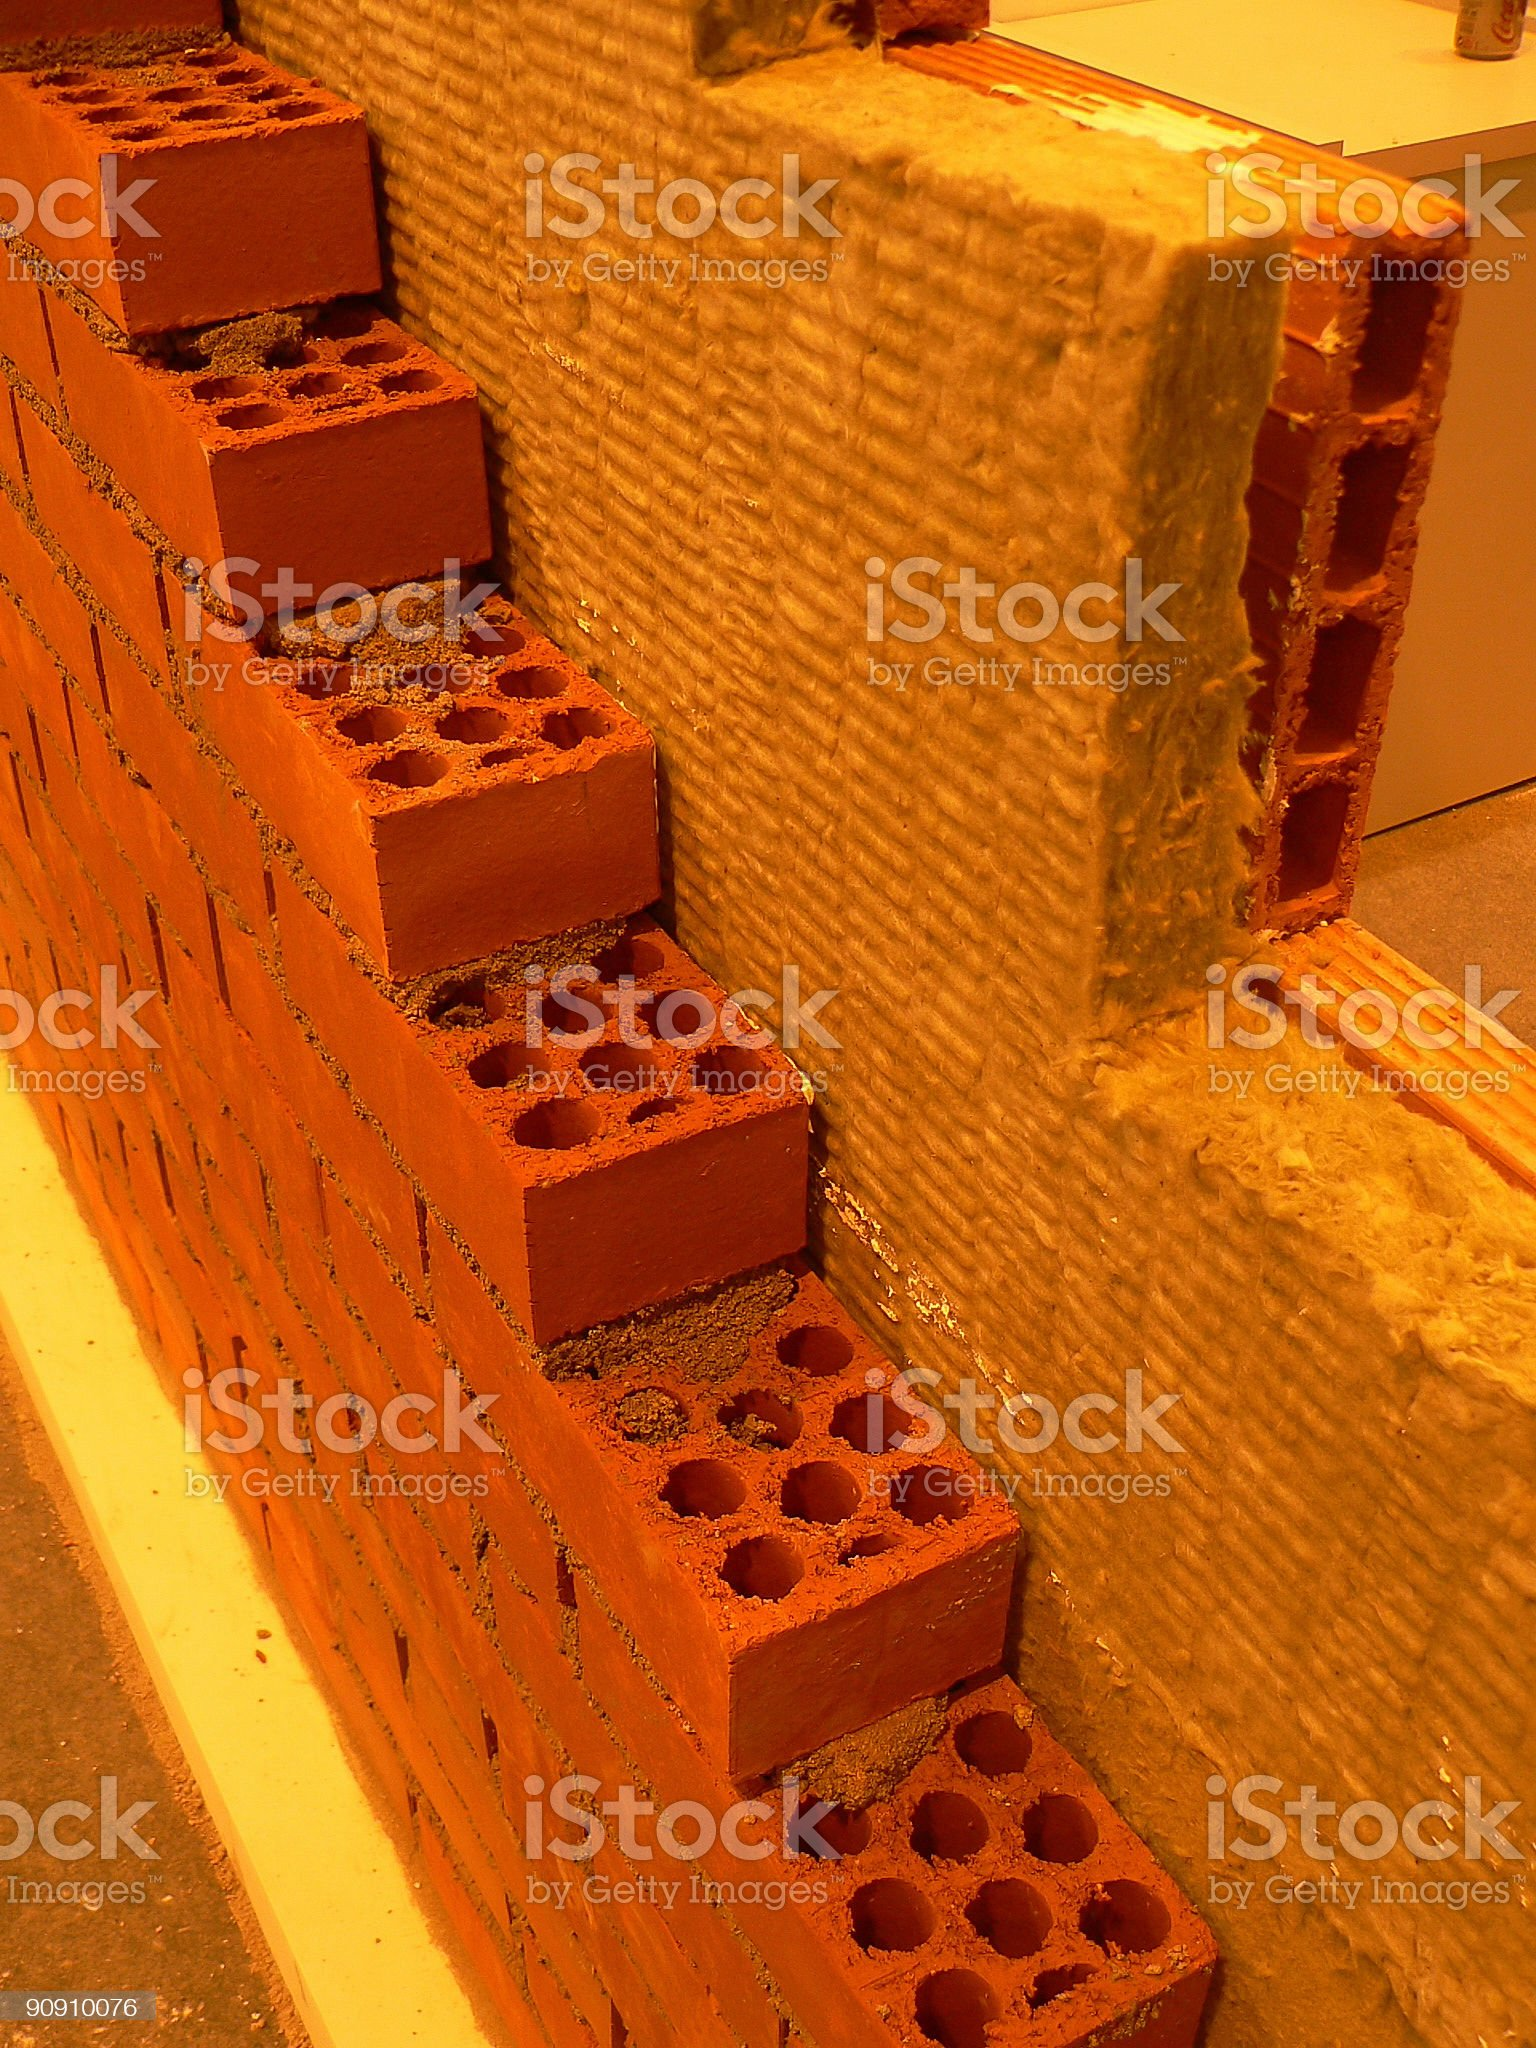 insulation royalty-free stock photo